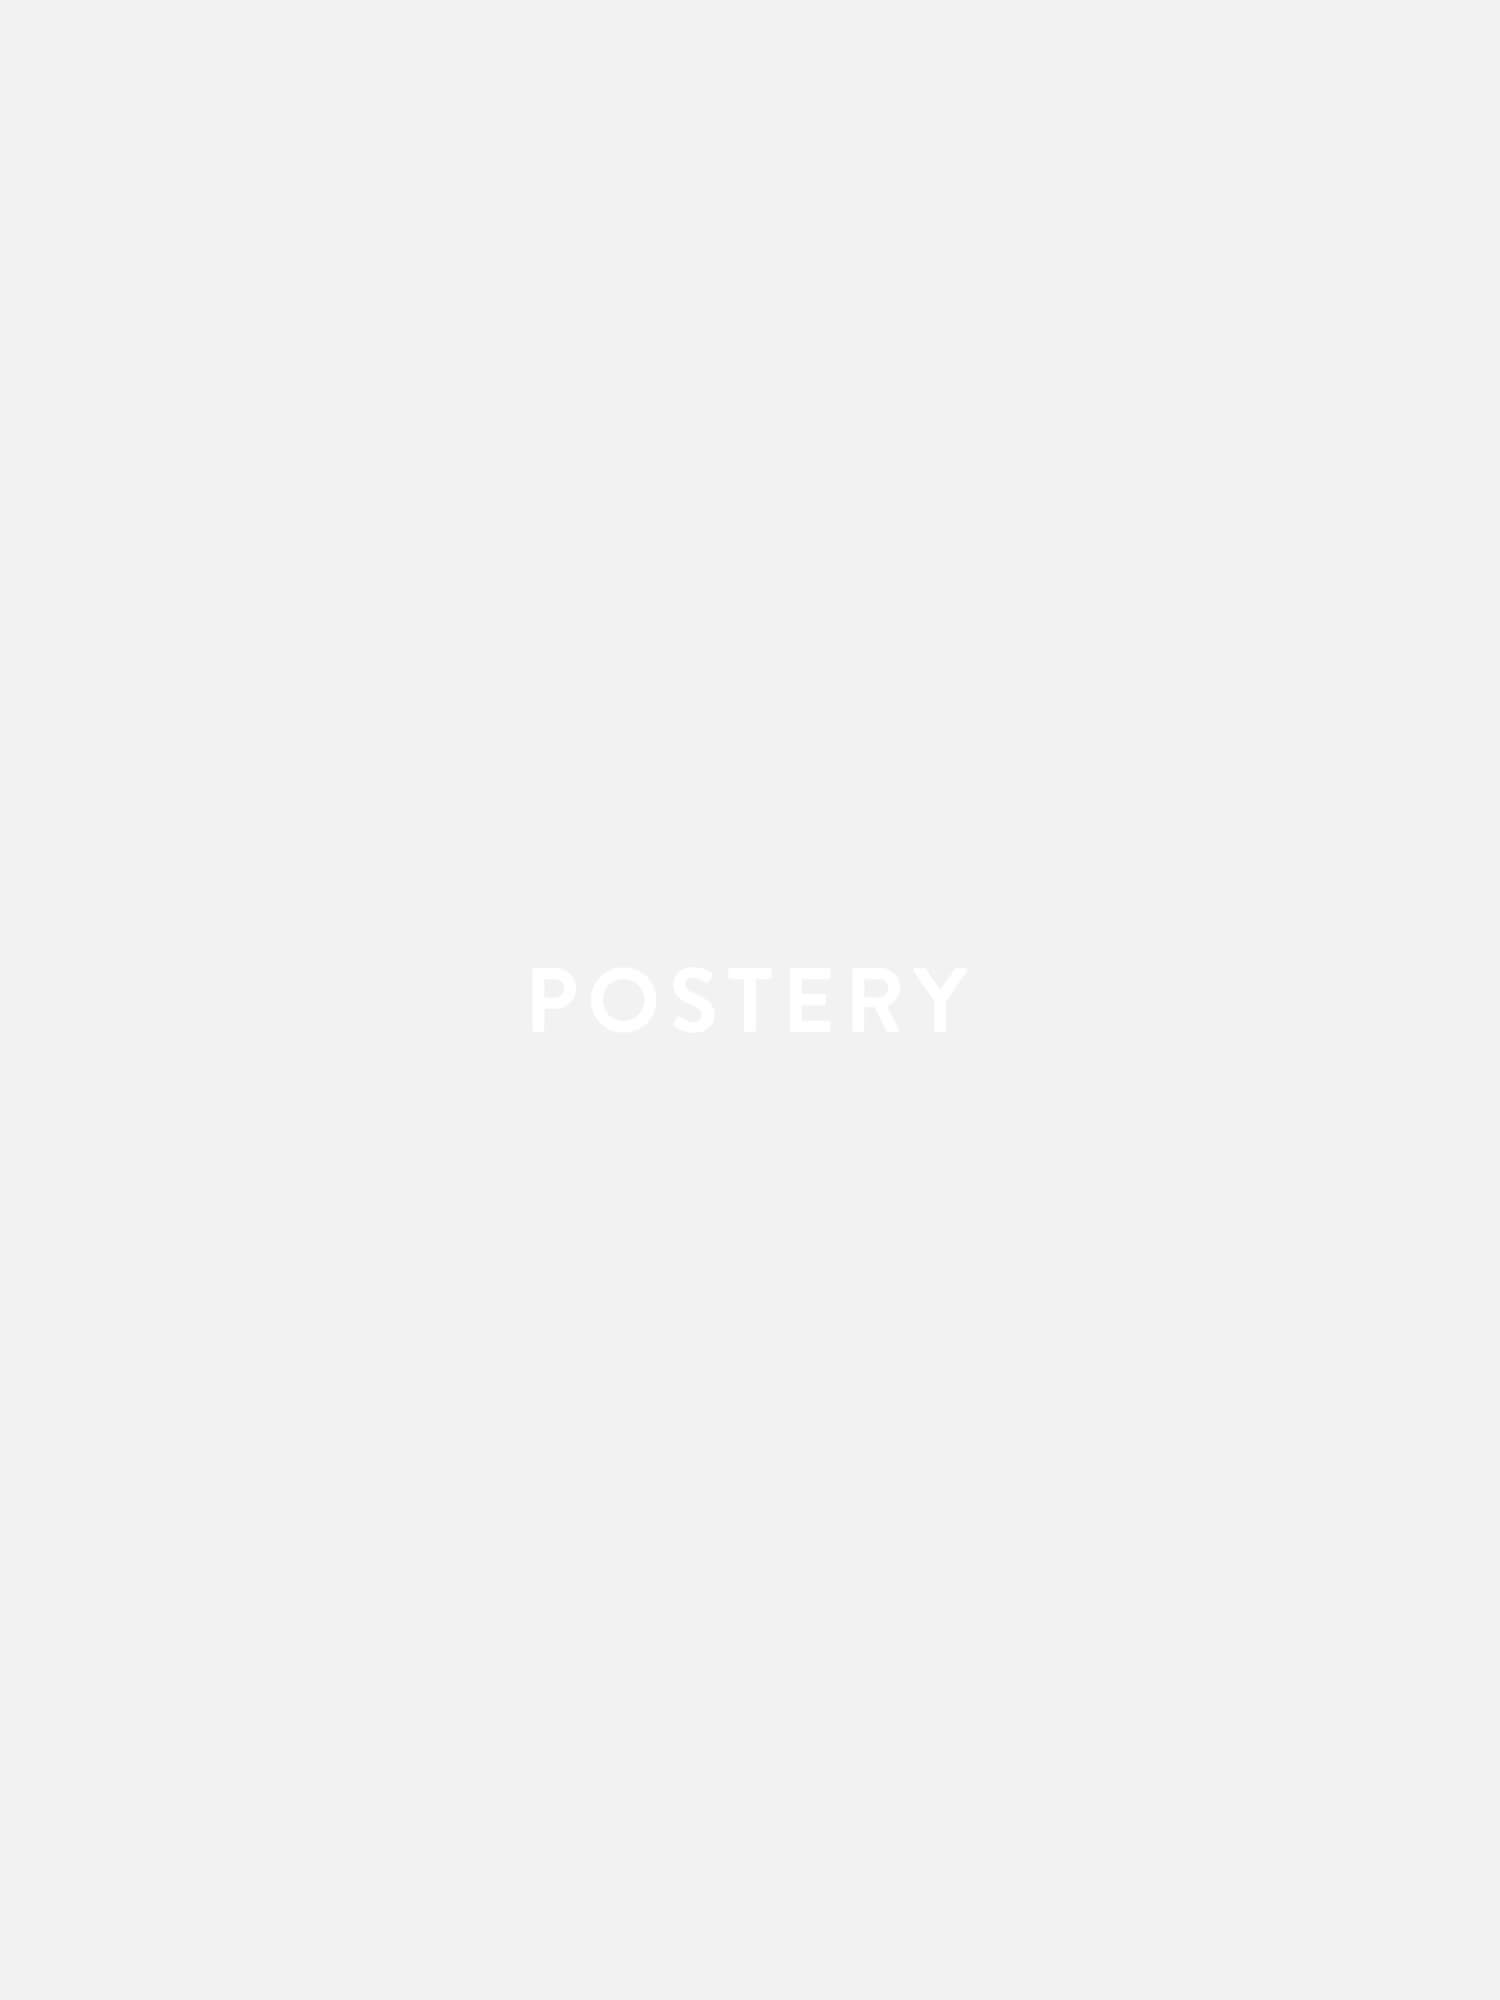 Reform Gallery Yellow Poster